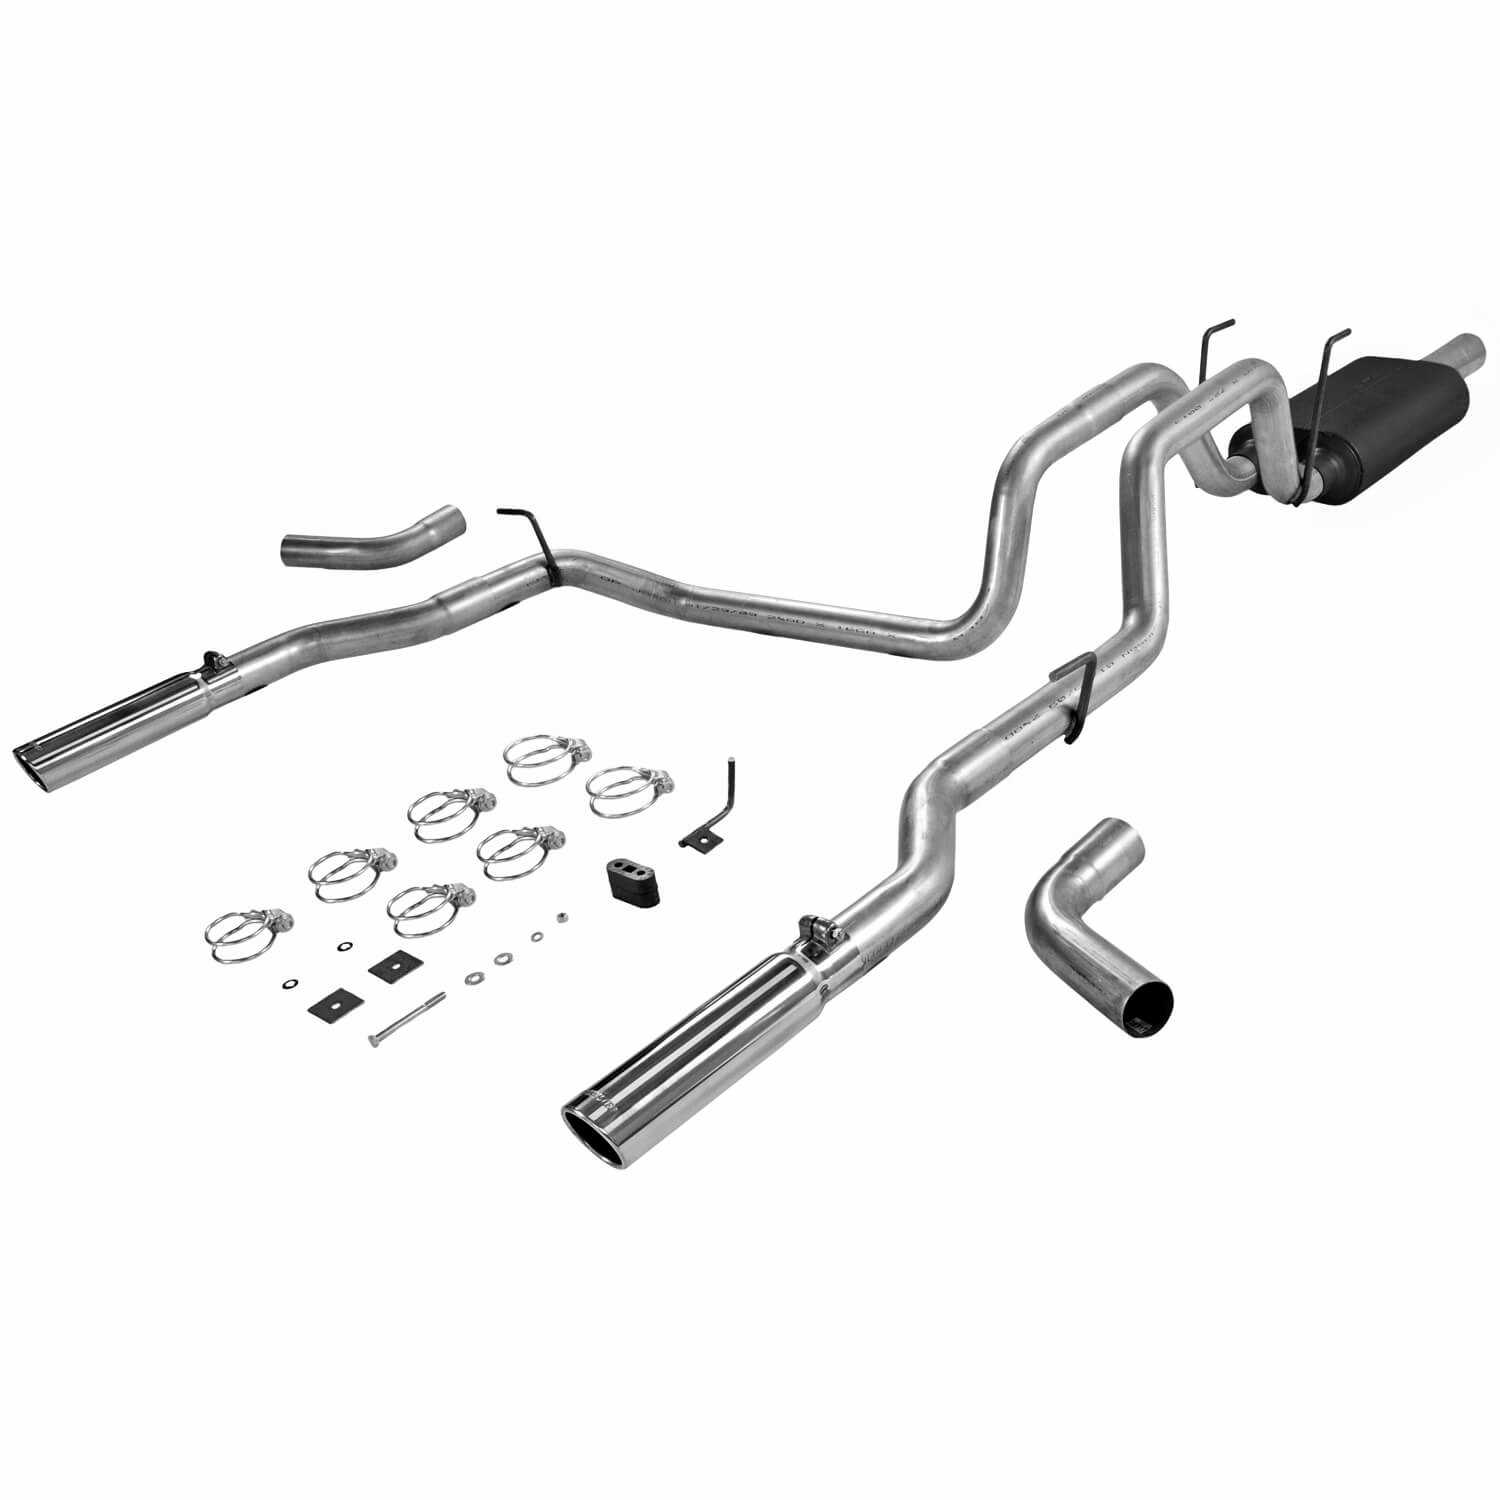 17424 Flowmaster American Thunder Cat Back Exhaust System